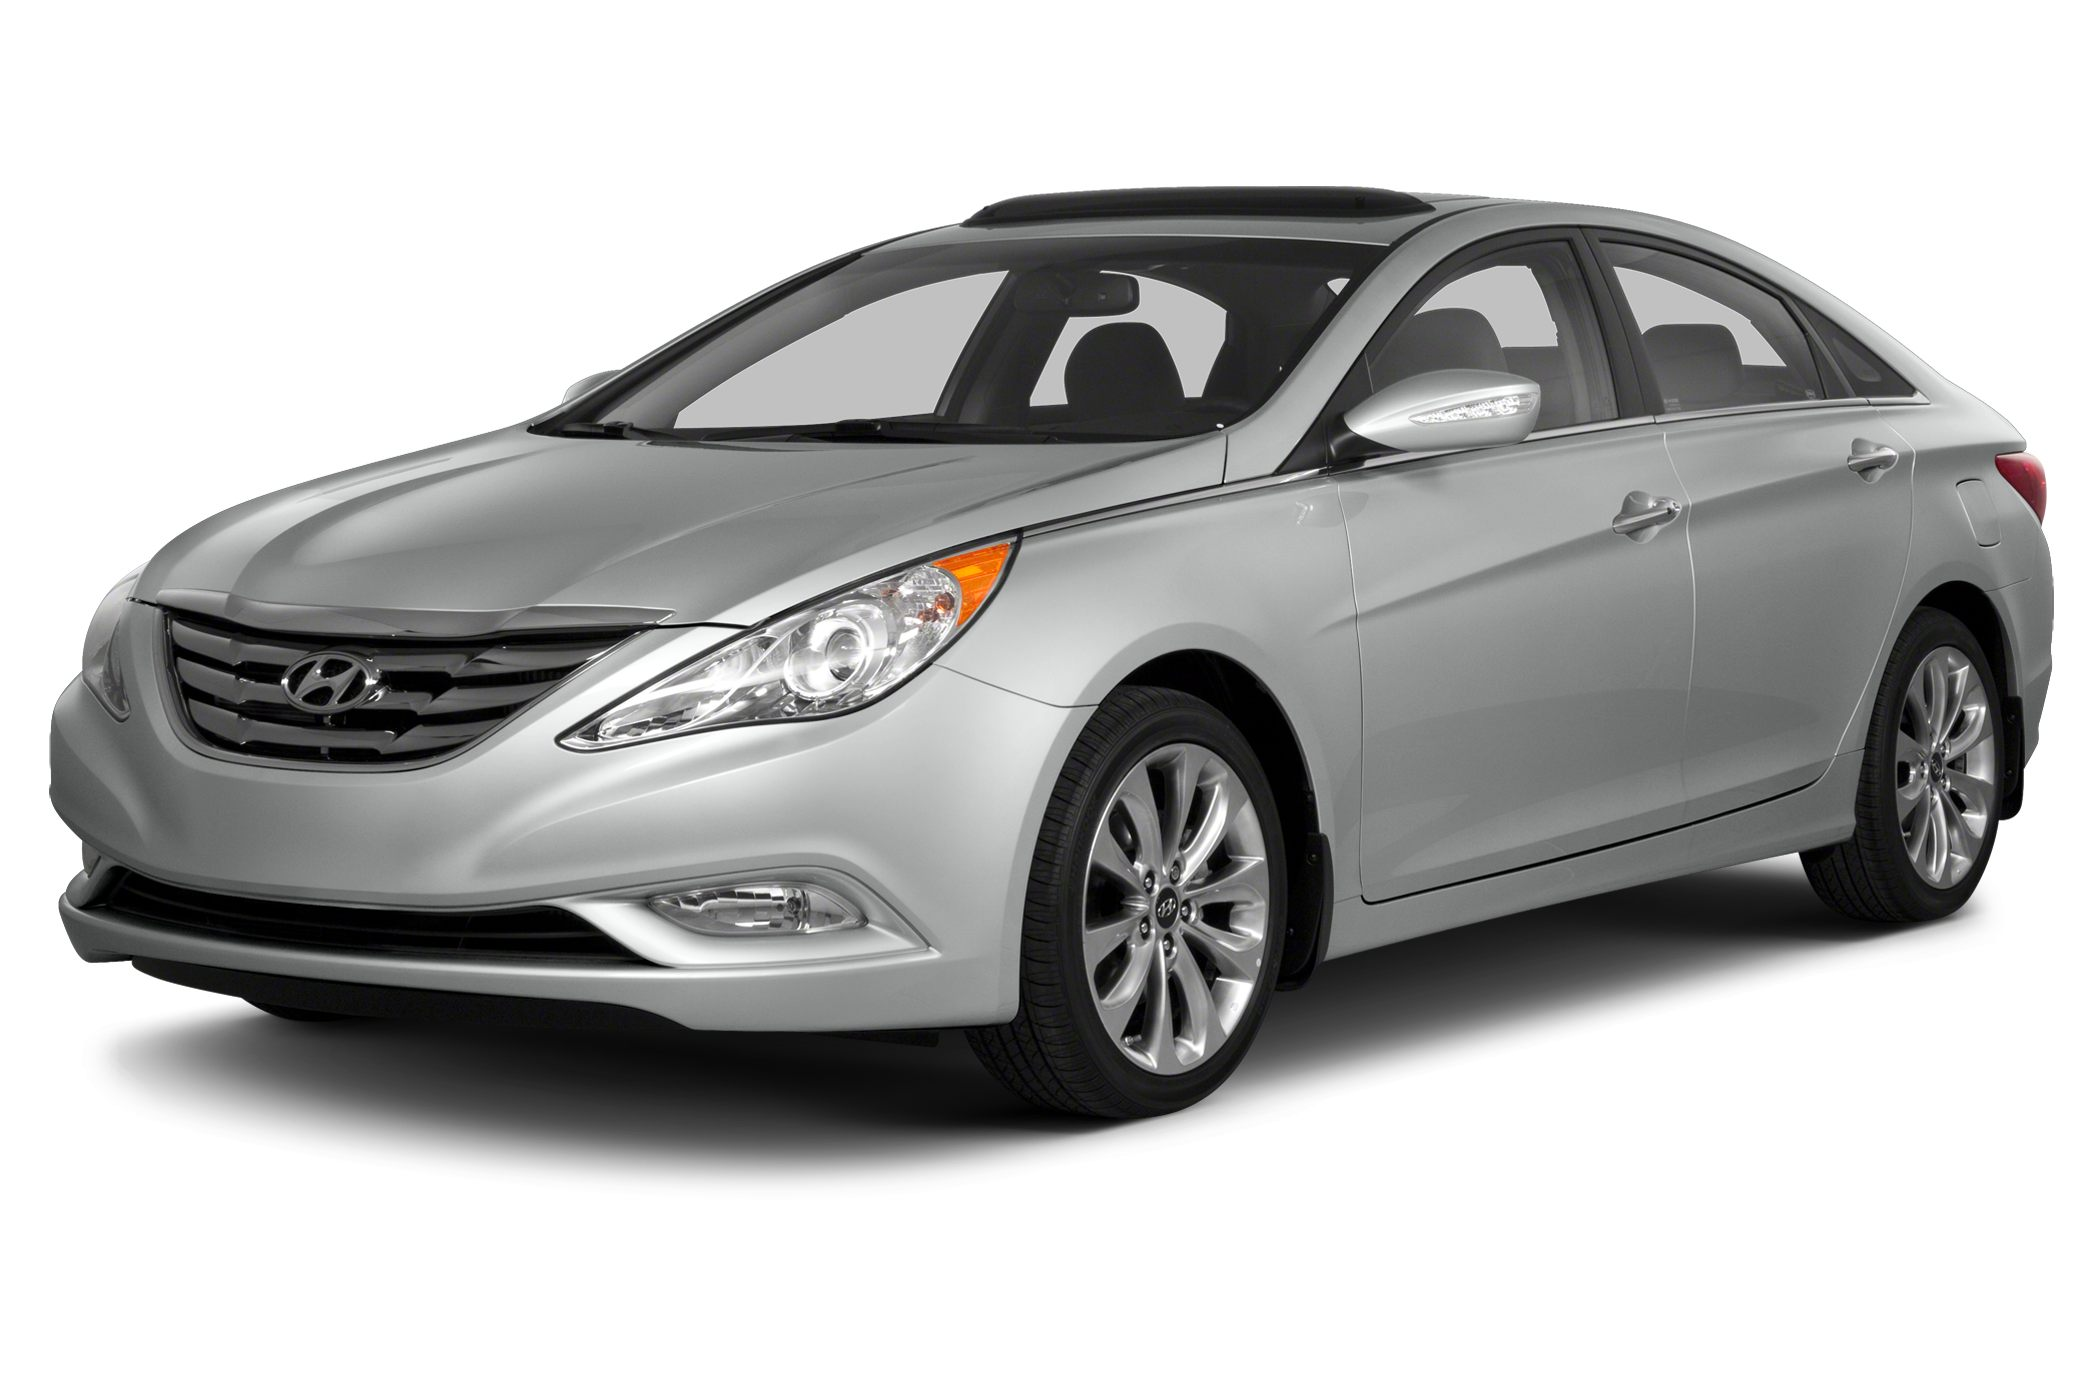 2013 hyundai sonata limited 2 0t 4dr sedan specs and prices http mcrouter digimarc com imagebridge router mcrouter asp p source 101 p id 332763 p typ 4 p did 0 p cpy 2012 p att 5